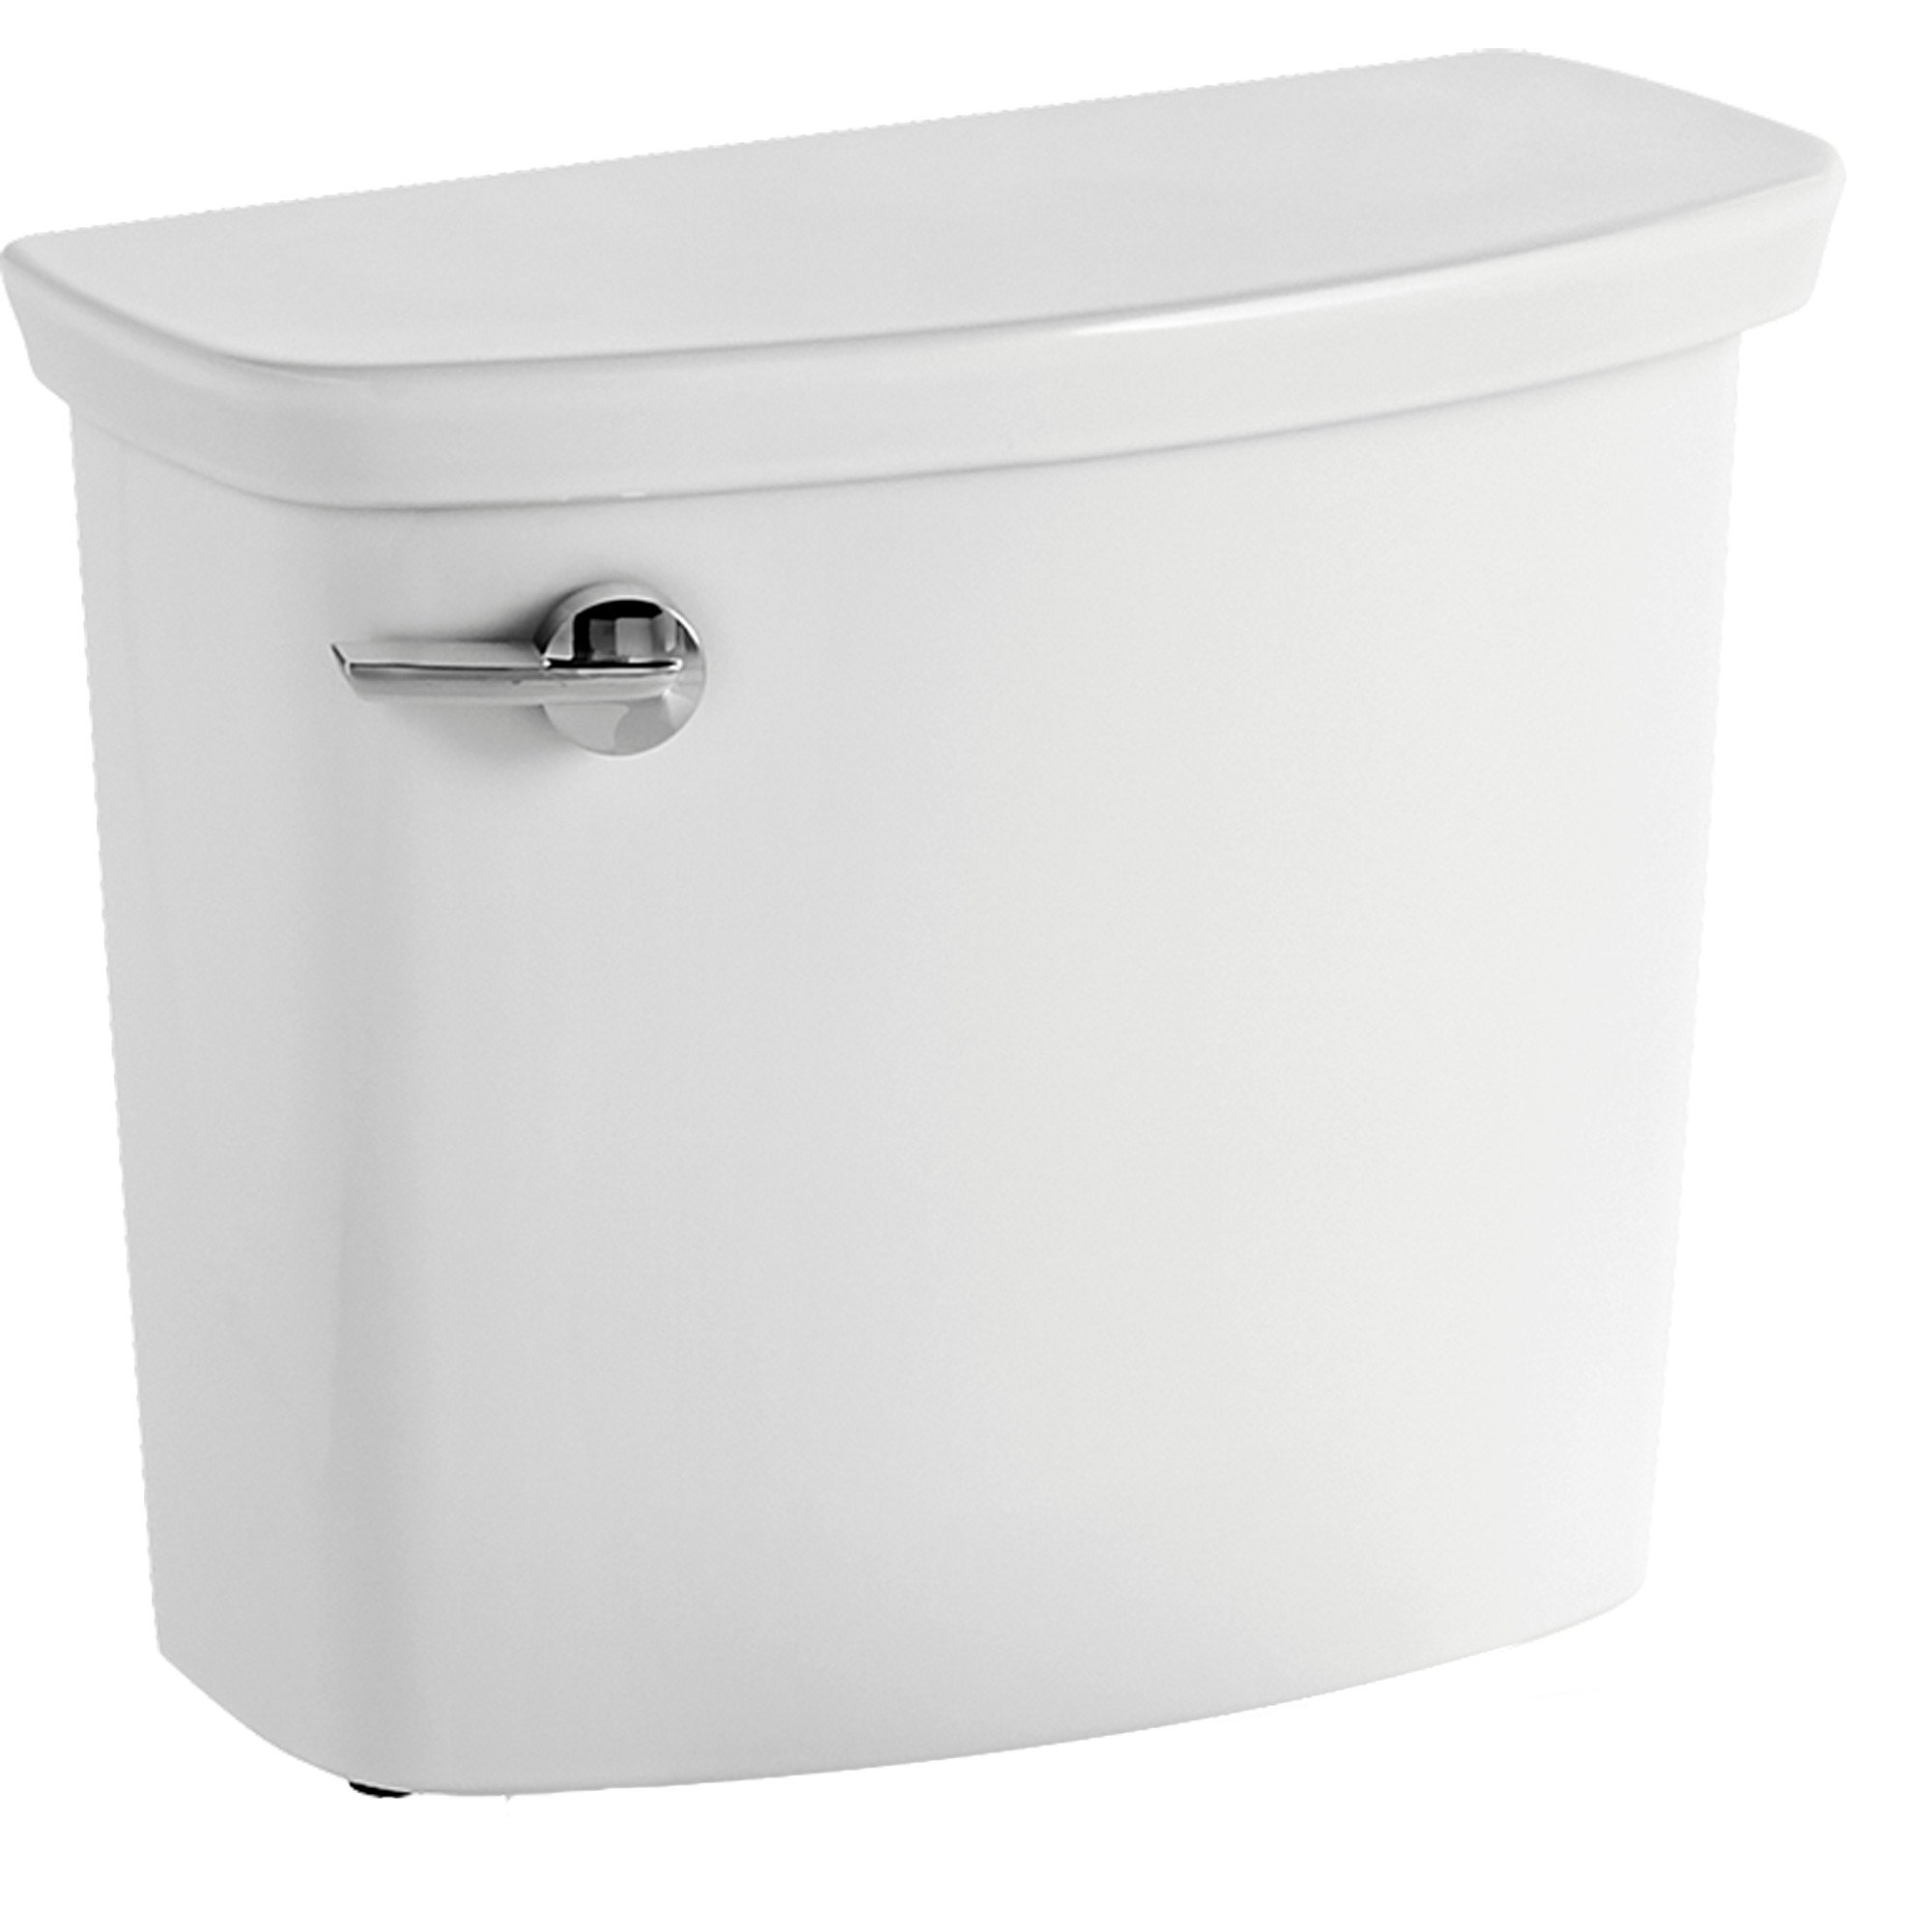 American Standard 4385A114.020 Vormax 1.0 Gpf/3.8 Lpf Complete with Coupling Components and Tank Trim, White